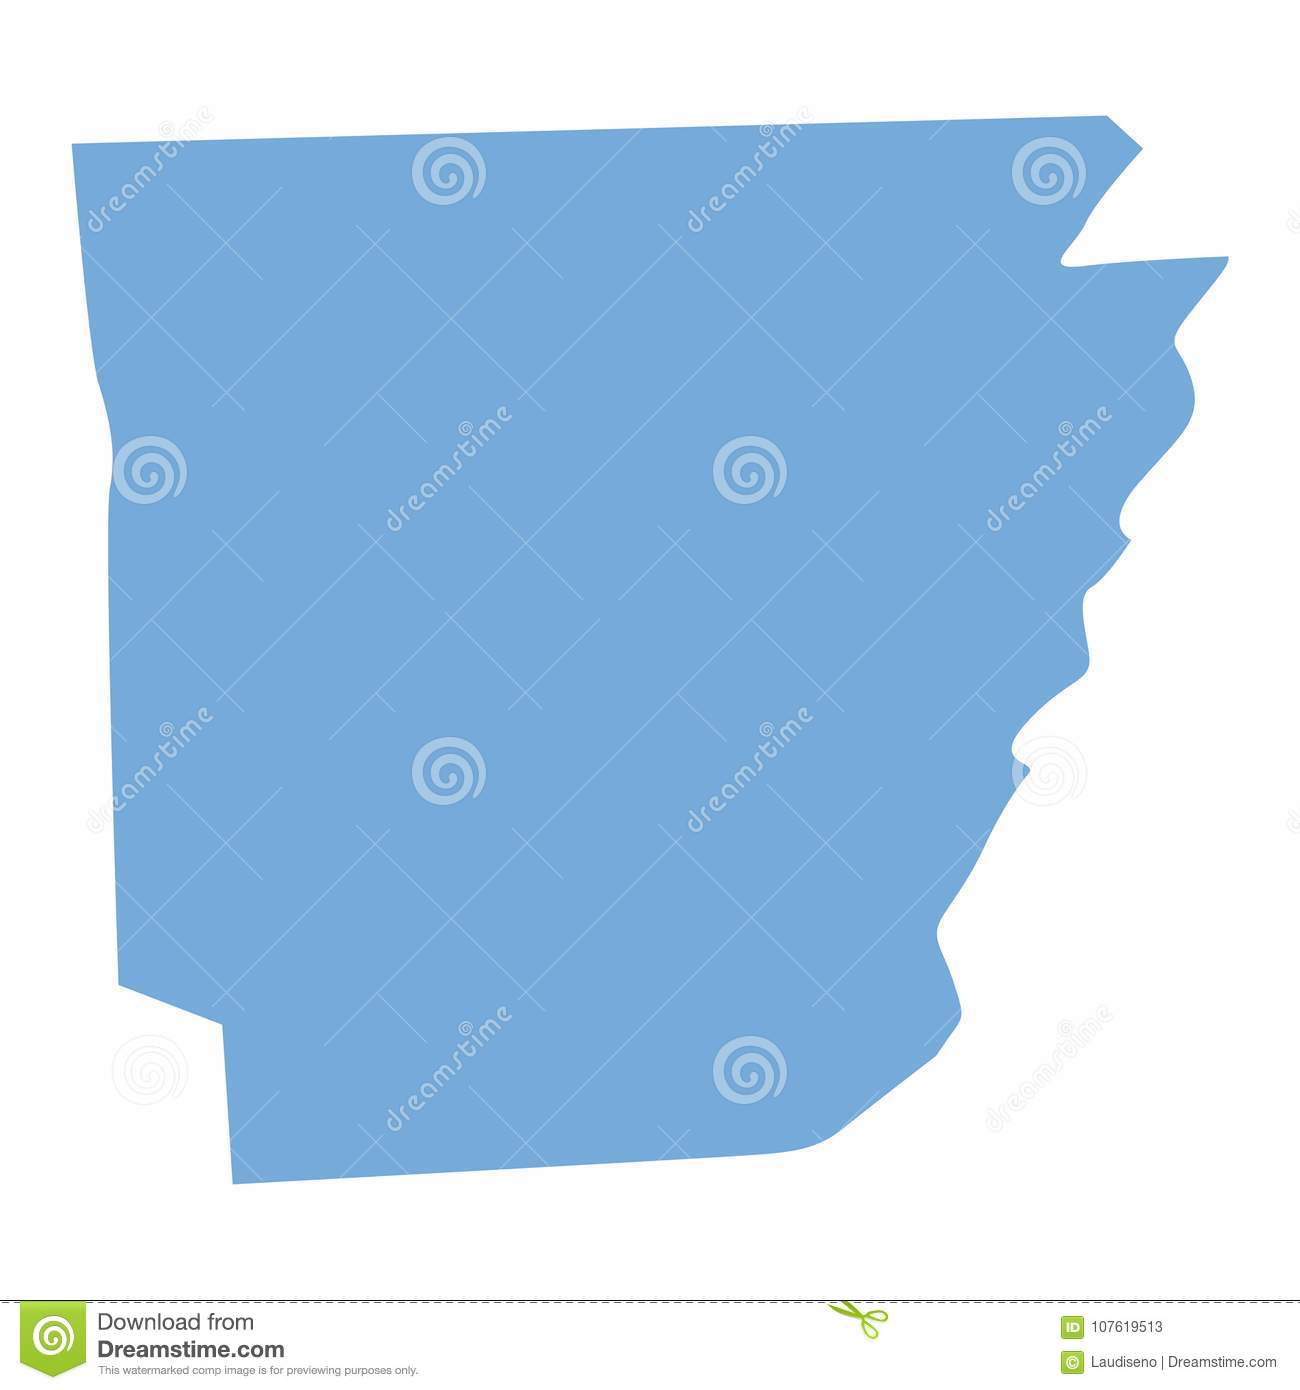 Arkansas World Map.Arkansas State Map Stock Vector Illustration Of World 107619513